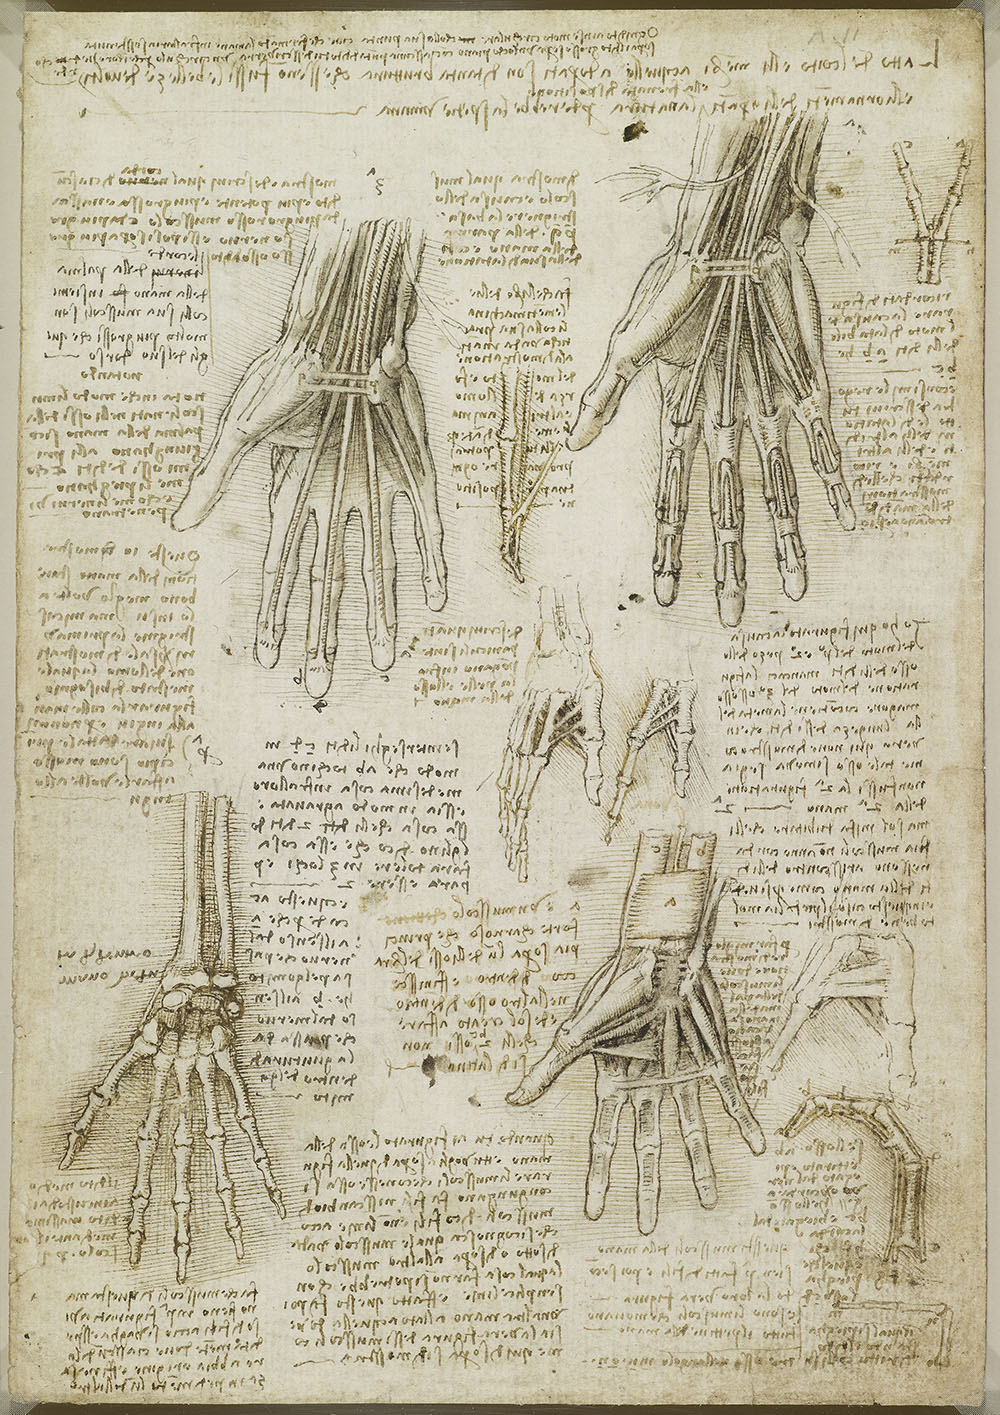 The bones, muscles and tendons of the hand c1510-11  Leonardo returned to the study of anatomy around 1506, and worked intensively on the subject for the next seven years. He intended to publish an illustrated treatise on human anatomy, but this was never completed, and the work of one of the great anatomists of the Renaissance thus had no impact on the discipline. In the winter of 1510-11 Leonardo was apparently working in the medical school of the University of Pavia, to the south of Milan, where he dissected up to 20 human bodies. His investigations focused on the mechanisms of the bones and muscles, and he developed novel illustrative techniques to depict these mobile, layered, three dimensional structures. Here Leonardo demonstrates the structure of the hand, building it up layer by layer in the manner of an engineer – the bones, then the muscles of the palm and wrist, then the two layers of flexor tendons, with details examining the action of the tendons.  Birmingham Museum & Art Gallery, Free to all, 10% off in café with National Art Pass -